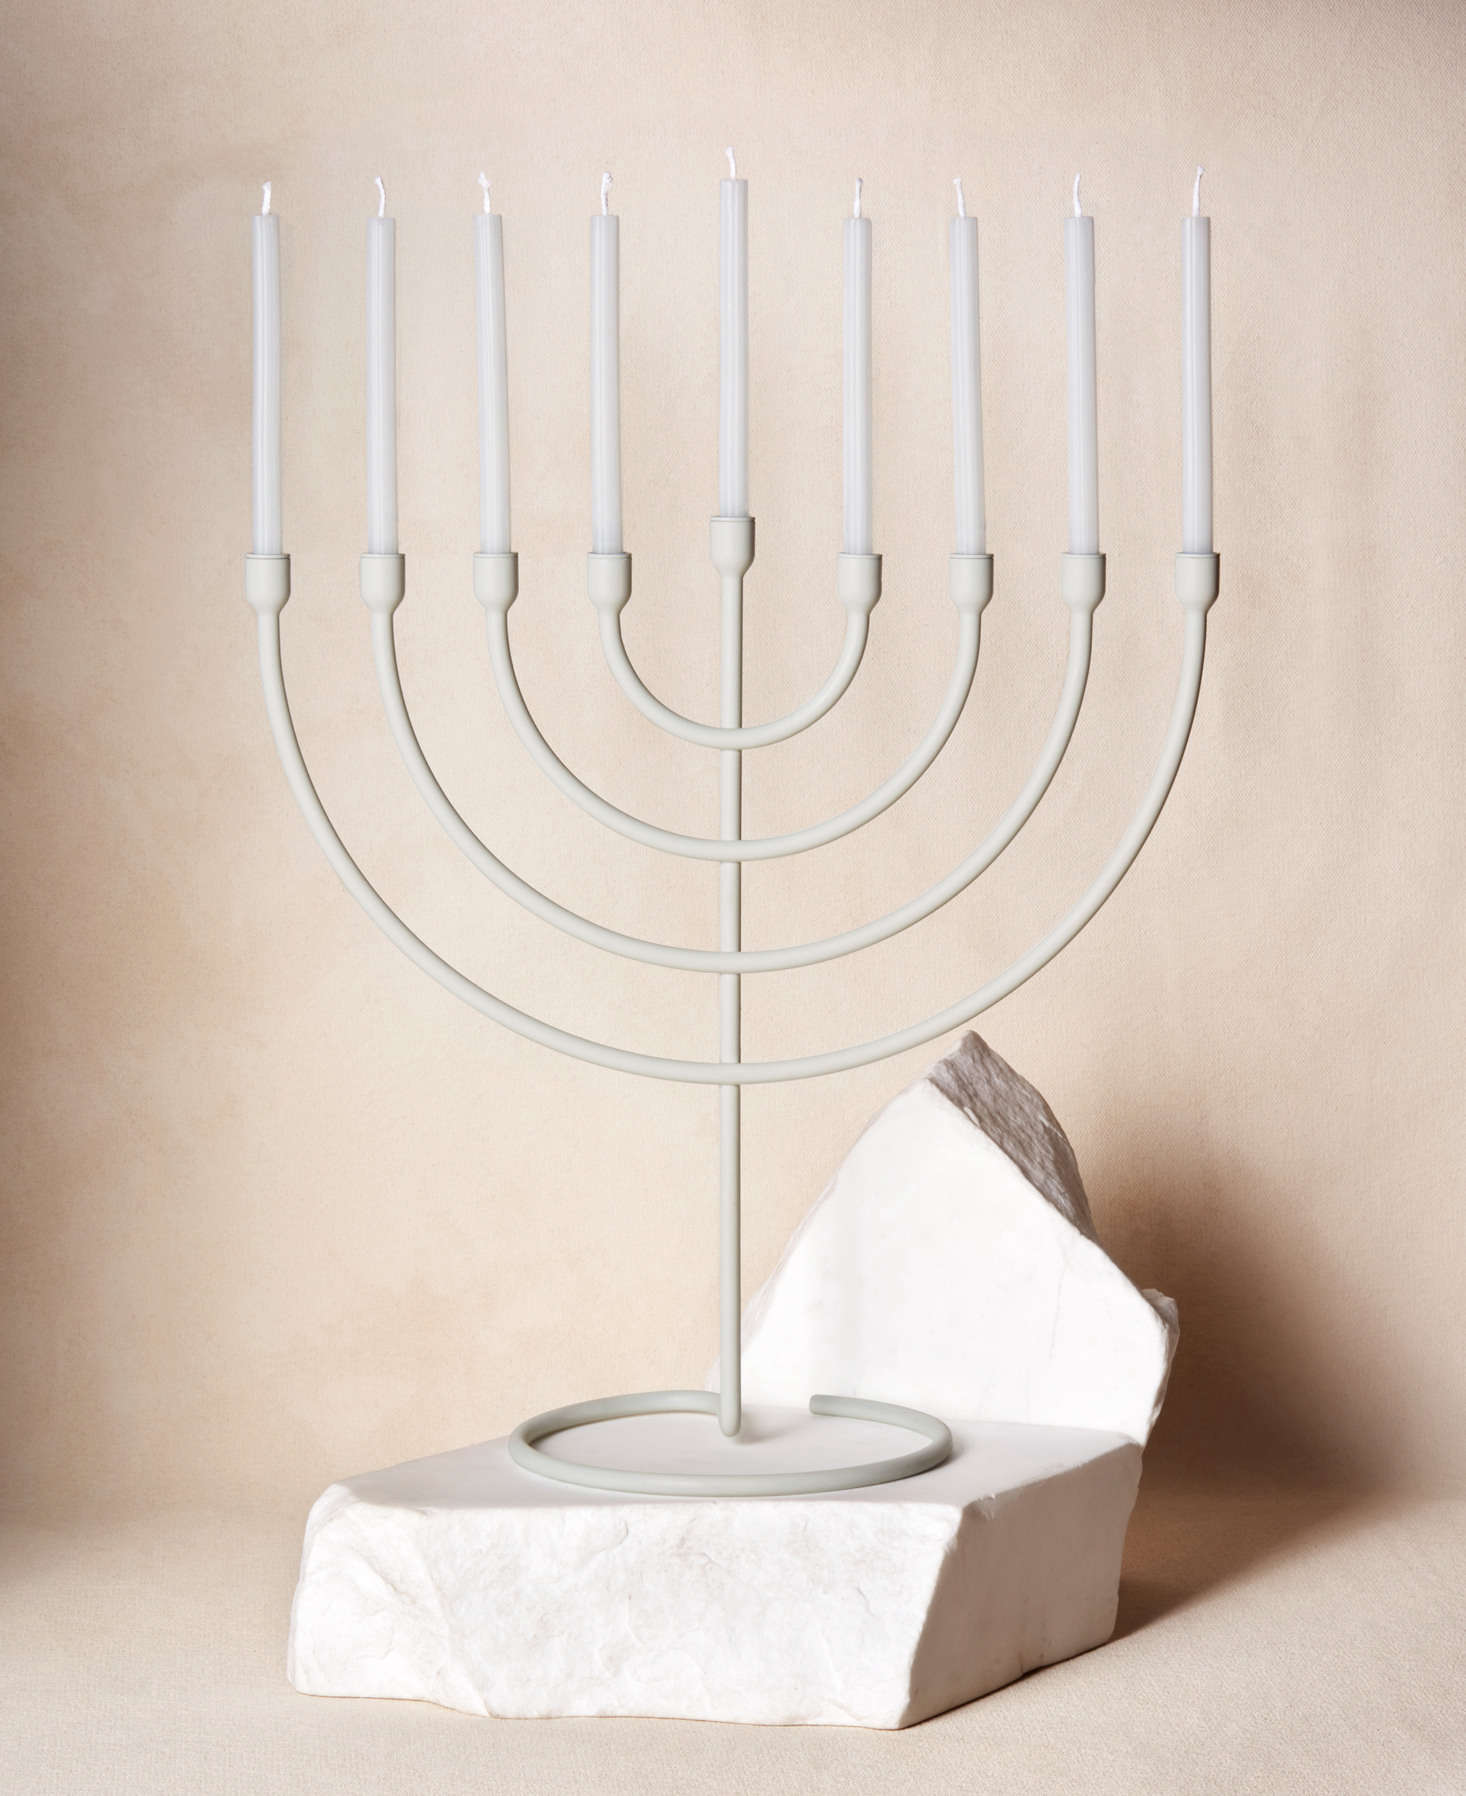 """The Trace Chanukiah, $5, is made of steel and comes in five colors. It holds eight candles, one for each night of Hanukkah, but can also be used throughout the year: """"We were thinking about how each item is a design piece for the home, not something that lives in a closet most of the time,"""" Schwartz told Vogue."""